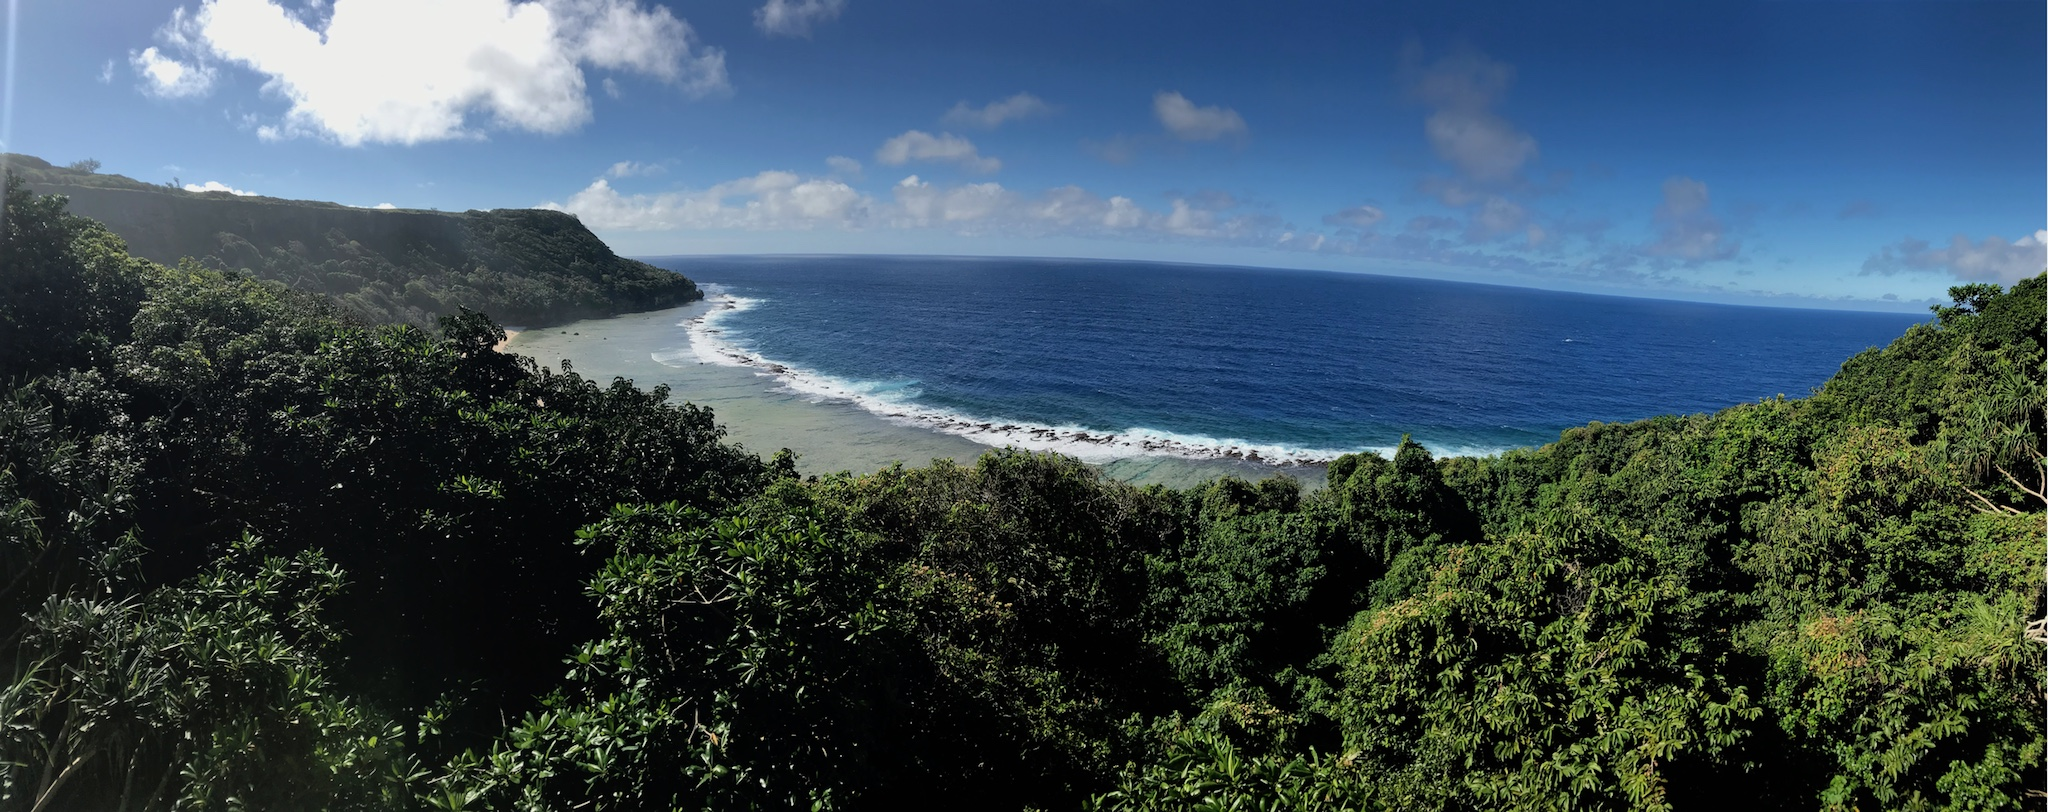 View from the top of the Access Pitch on the Whale wall above Fangatave Beach, Eua island, Tonga.